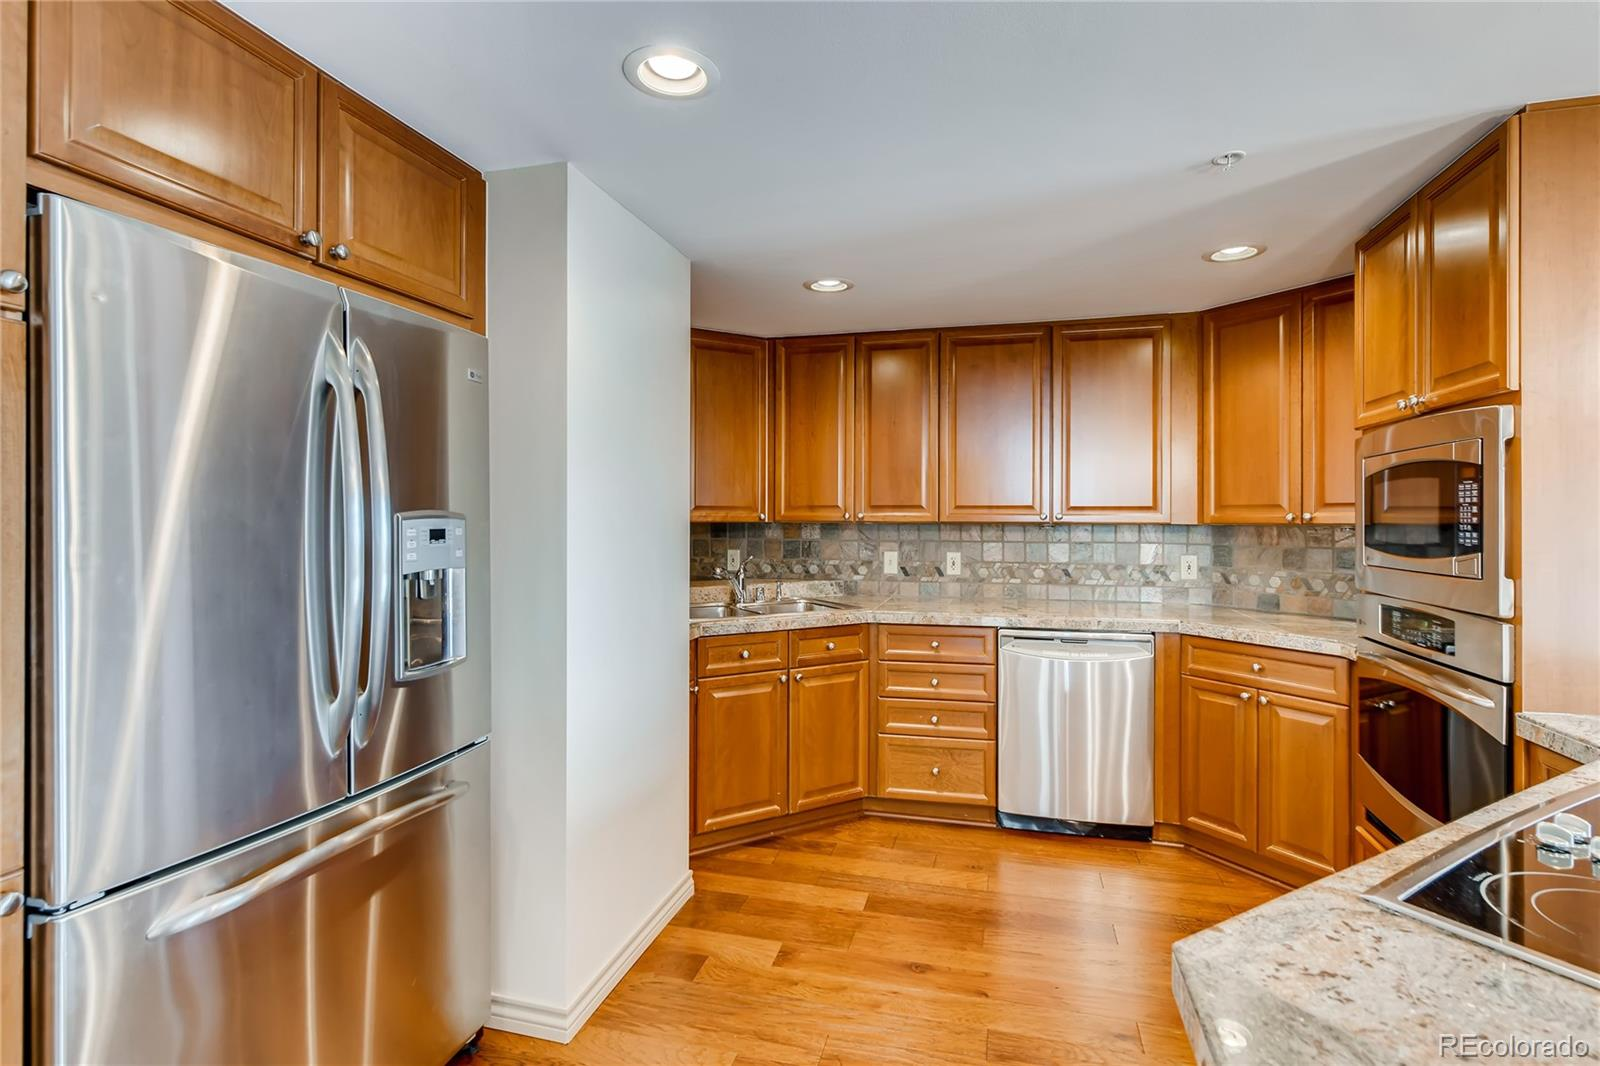 Newly updated!!!! Don't miss this beautiful two-bedroom, two-bathroom condo located in the heart of the Denver Tech Center. Just minutes from I-25 & I-225, public transportation, parks, restaurants, shopping, Cherry Creek State Park and DIA. The unit offers large bay windows with amazing views of George Wallace Park and the DTC clock tower.  Bedrooms perfectly placed on opposite sides of the unit allow for an open and airy flow with plenty of room for entertaining. Master suite includes a large walk in closet and a floor to ceiling sliding glass door that opens to the patio. The patio offers two entrances from both living room and bedroom perfect for enjoying the views and grilling. Kitchen is equipped with GE Profile stainless Steele appliances and plenty of storage. Kitchen and bathrooms offer granite tile counter tops. Laundry room with stackable washer and dryer included. Unit includes one deeded garage space 15 feet from building entrance. Garage also allows access to one large extra storage unit. Building is safe and secure with electronic doors only accessed with fob and onsite staff. Amenities include concierge, work out facility, business center, conference room and party room.